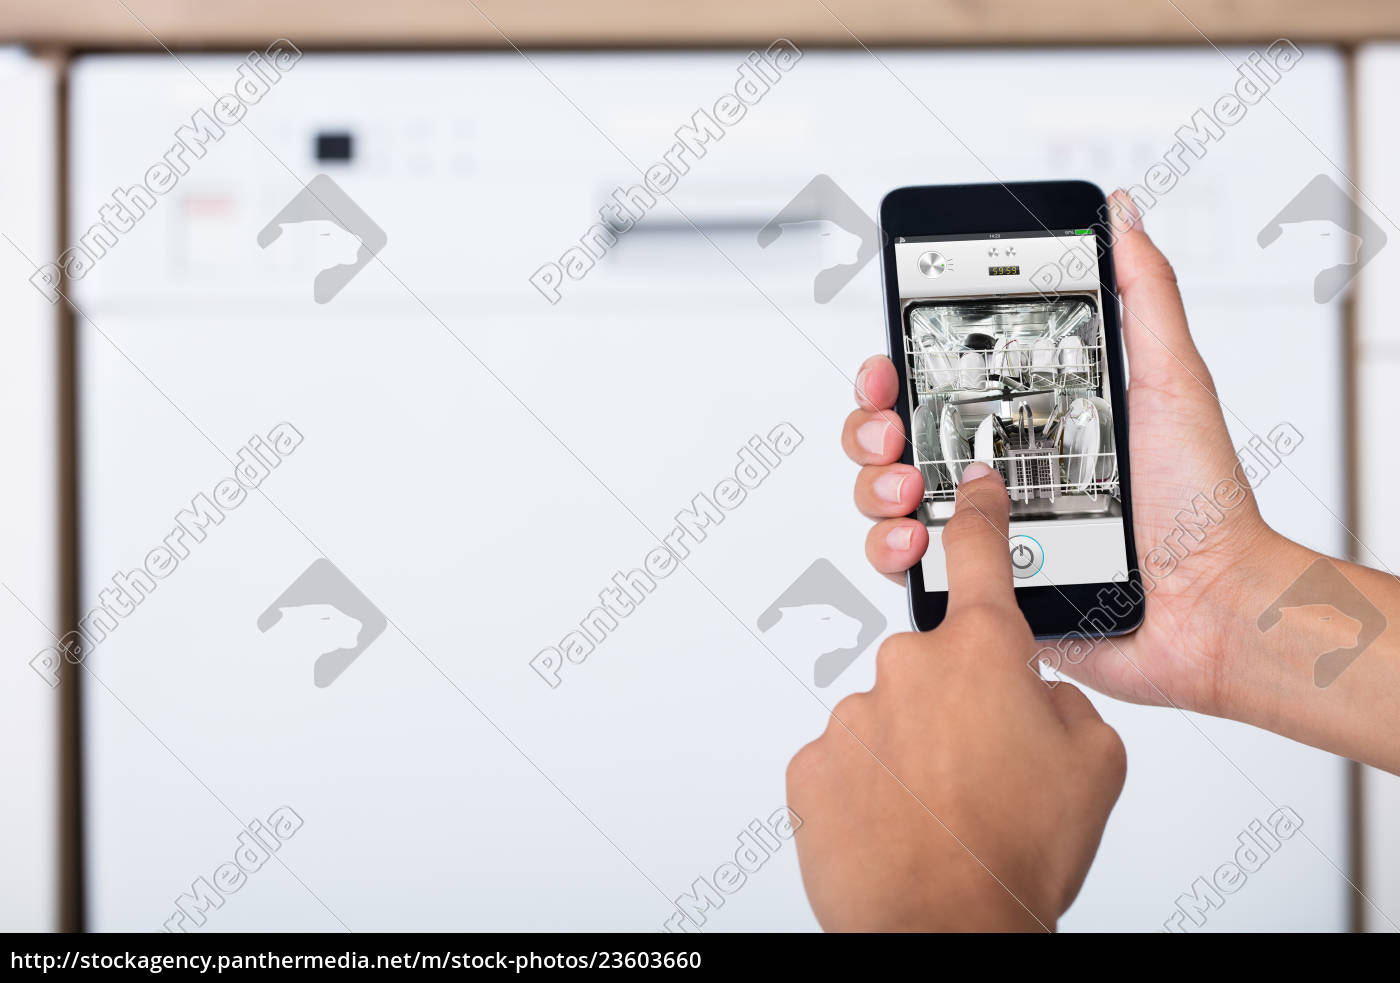 woman's, hand, showing, dishwasher, app - 23603660